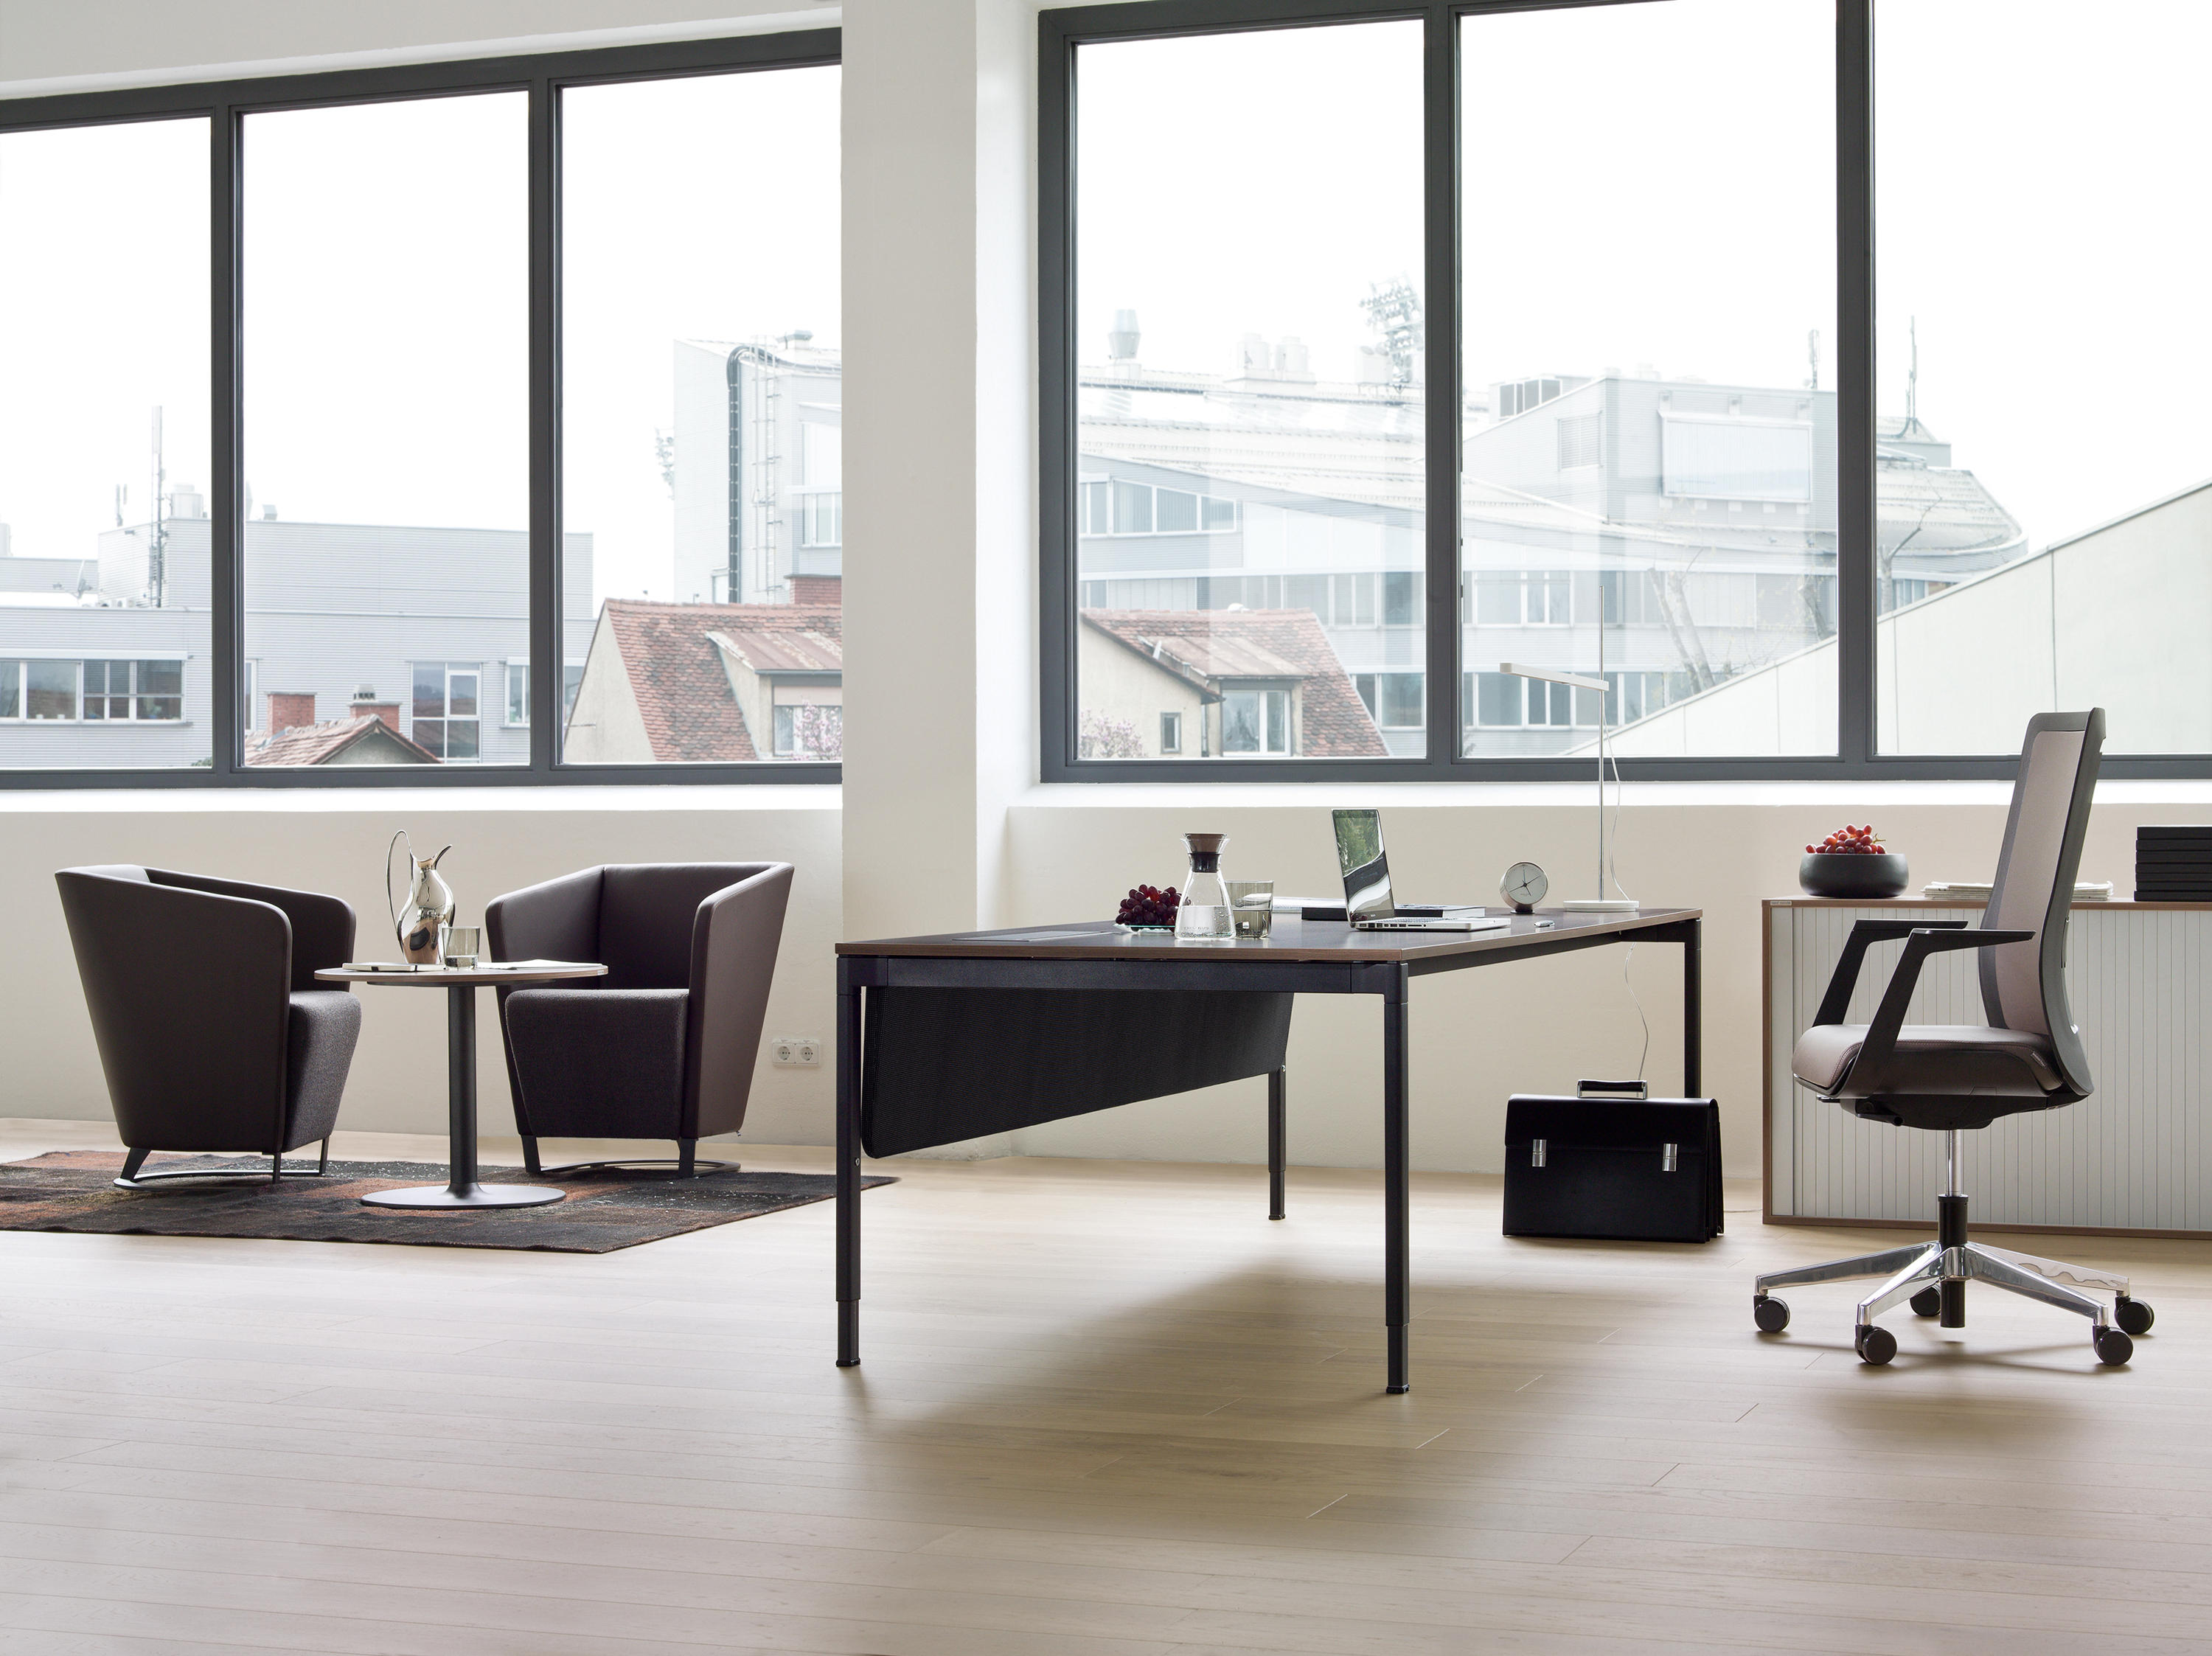 veron table meeting room tables from wiesner hager architonic. Black Bedroom Furniture Sets. Home Design Ideas